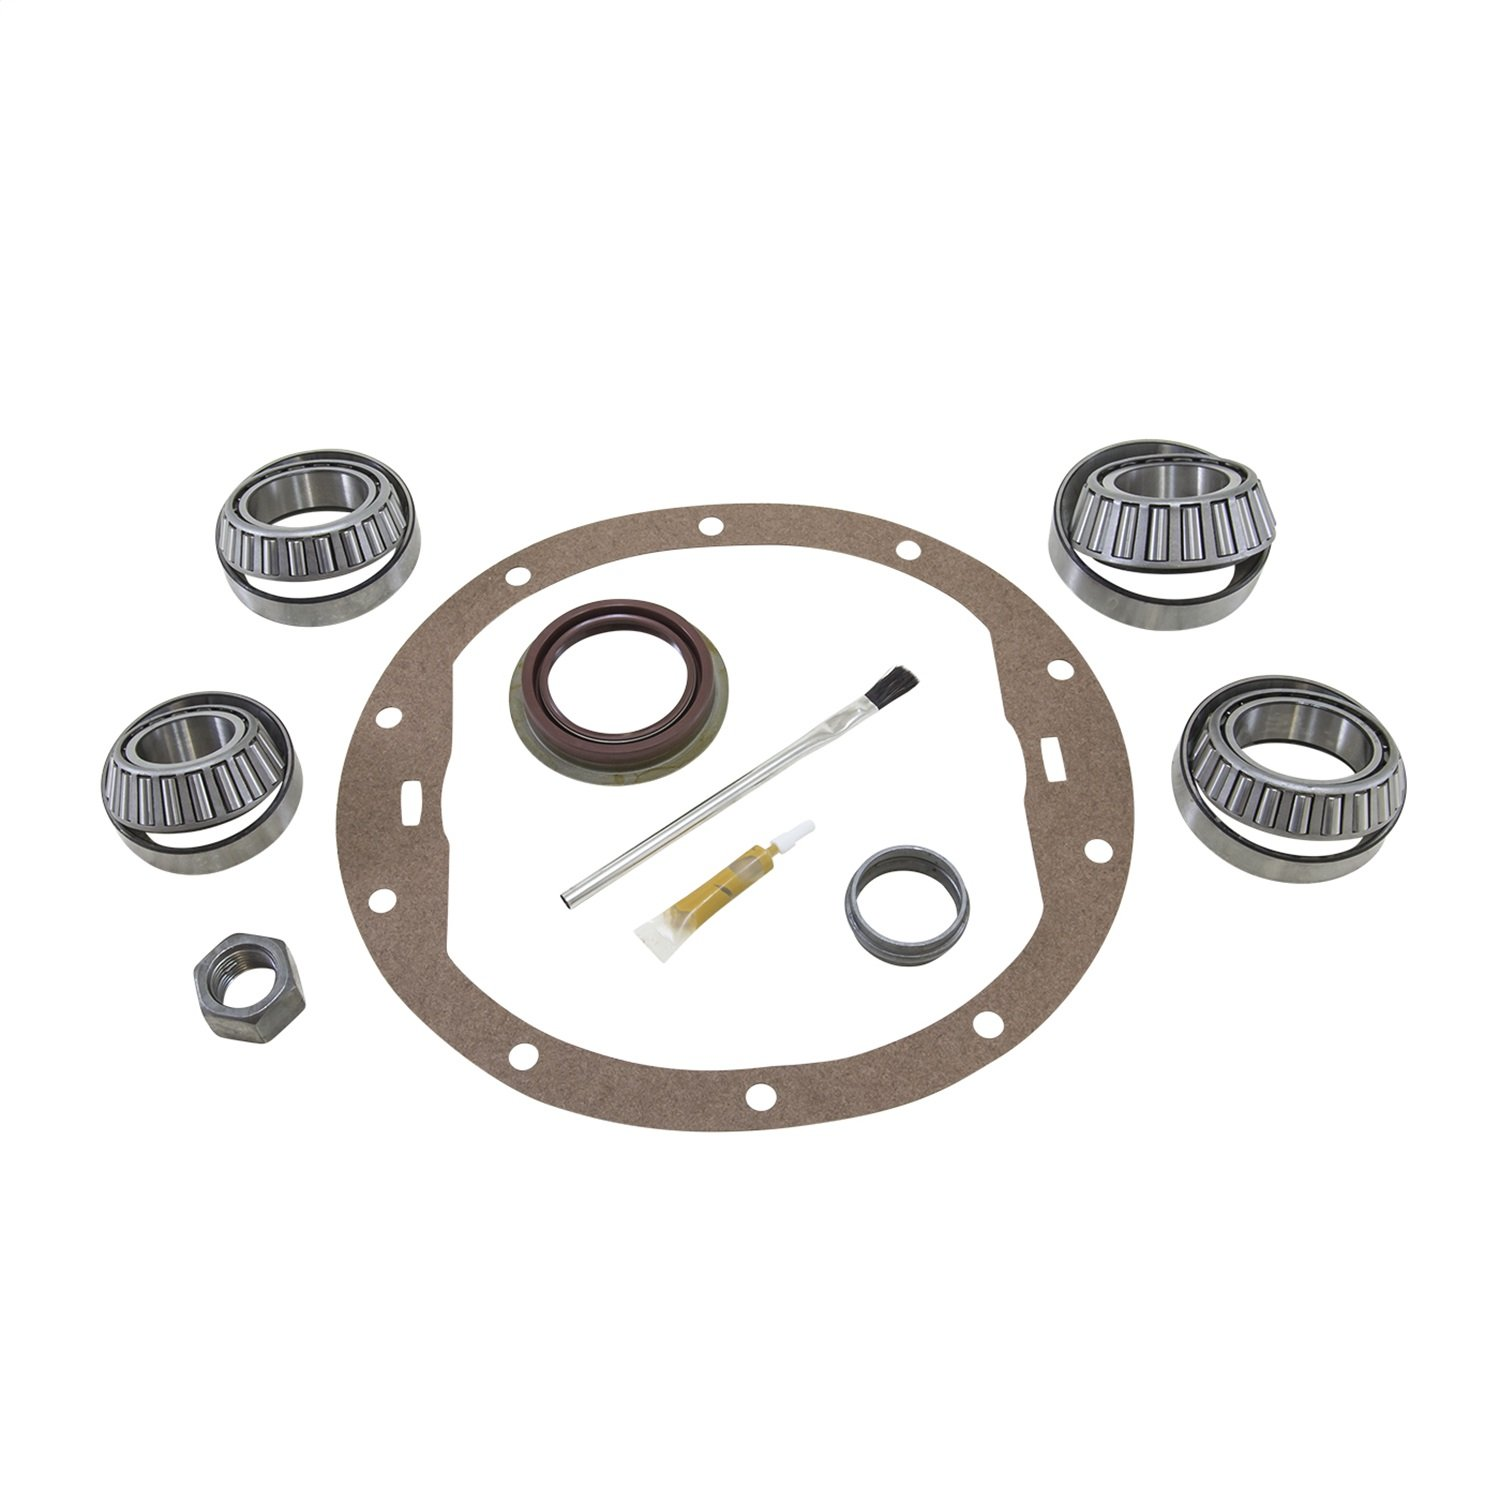 Yukon (BK GM7.5-B) Bearing Installation Kit for GM 7.5'' Differential